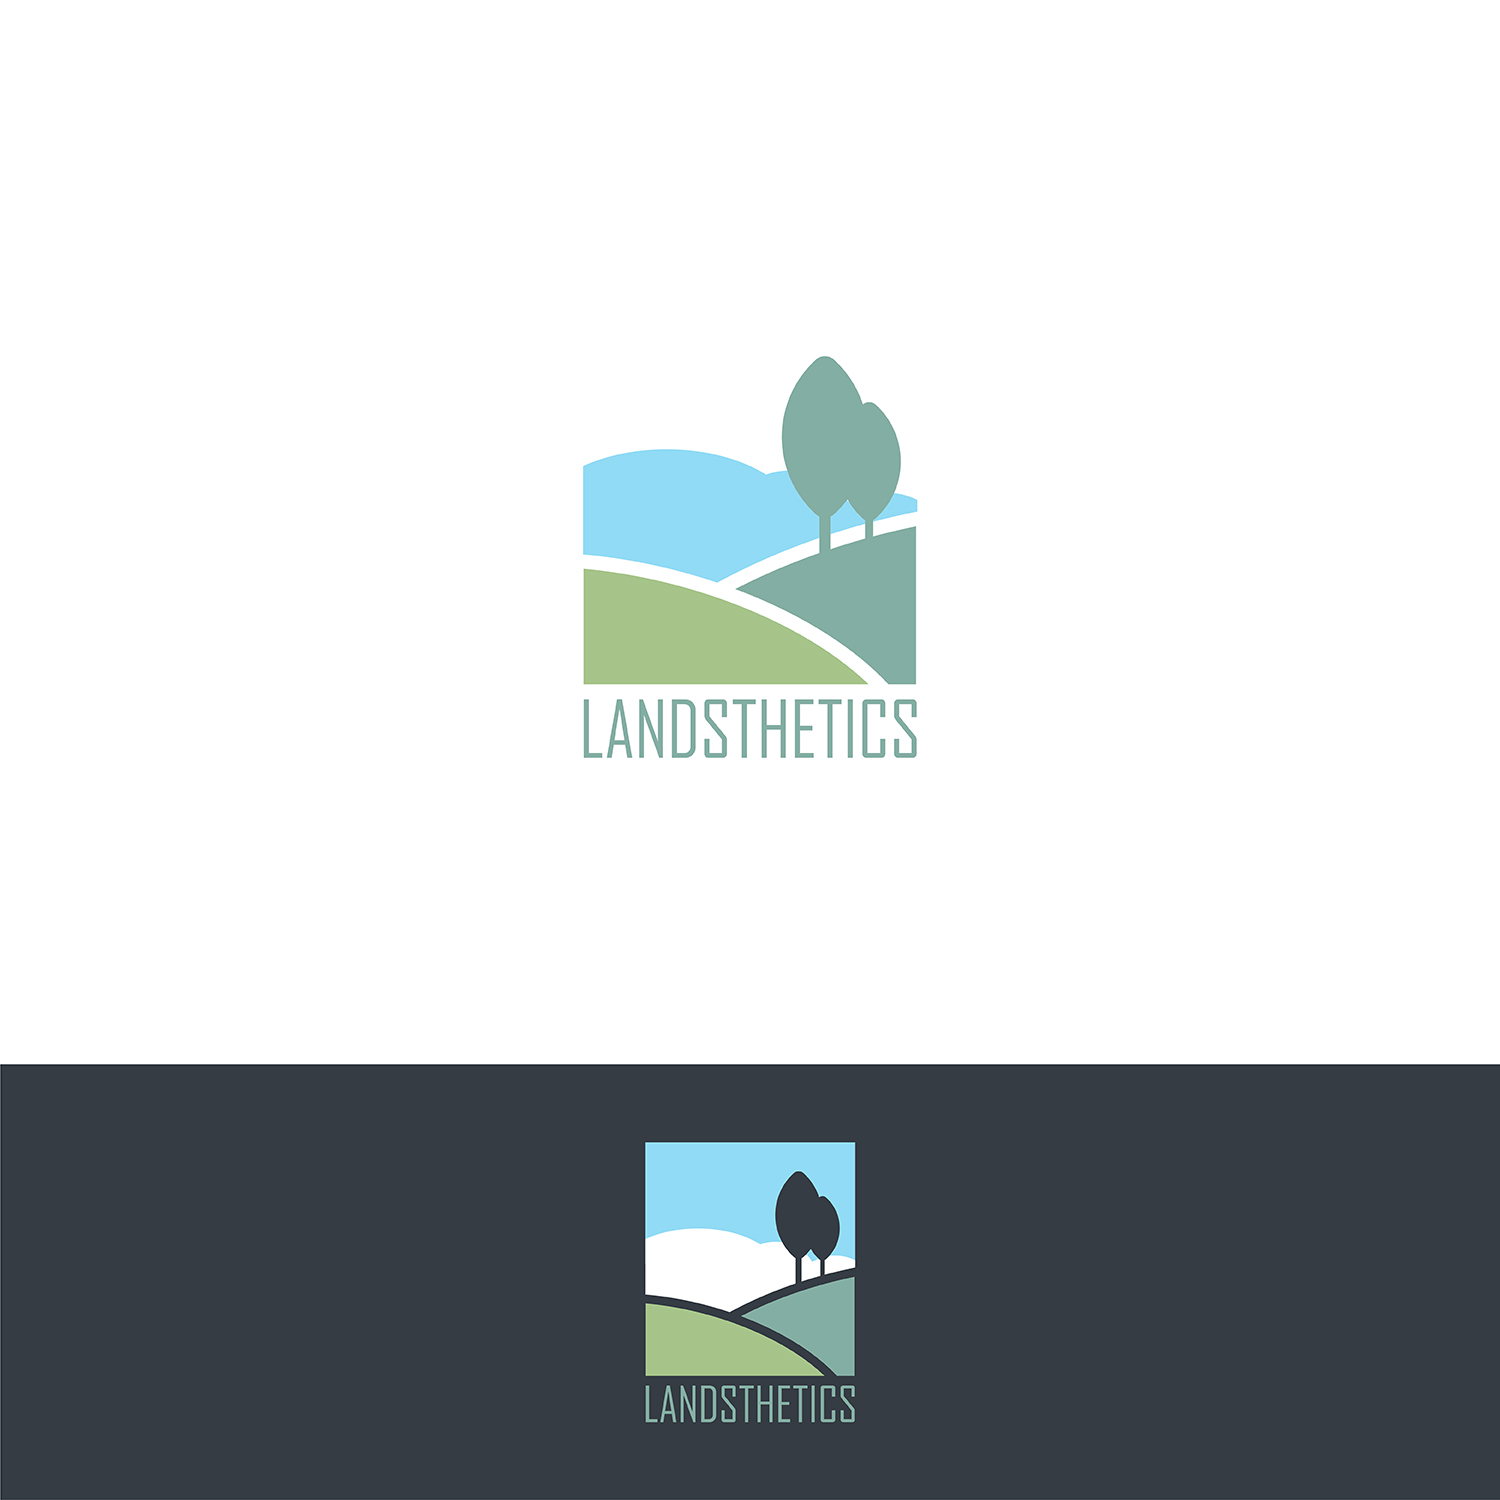 Modern, Masculine, Landscaping Logo Design for Landsthetics.